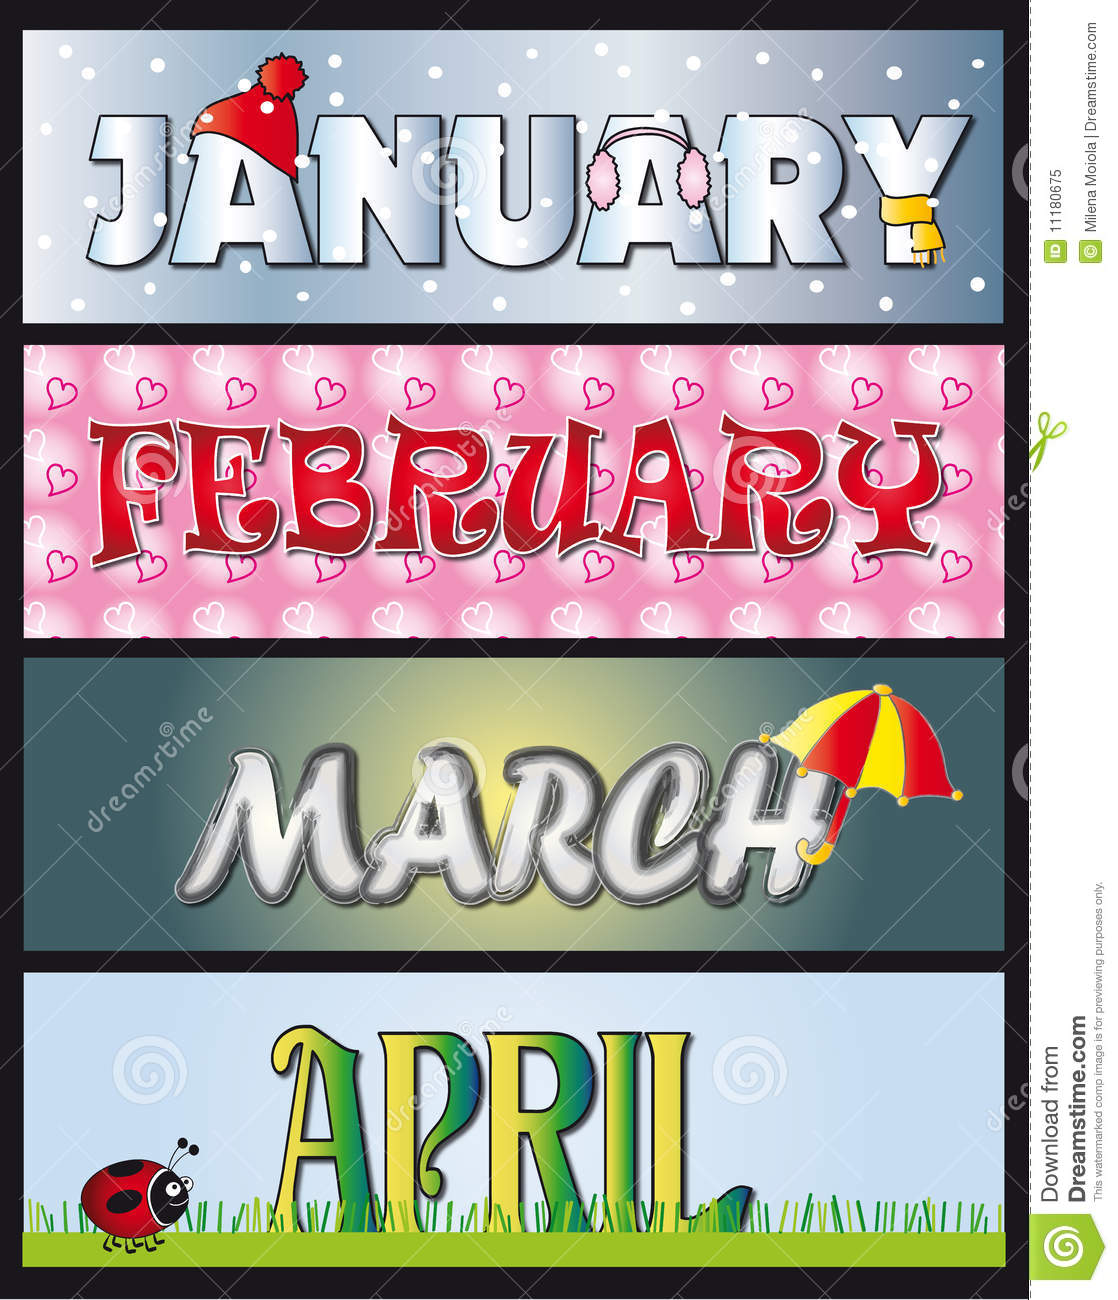 January February March April Royalty Free Stock Photo - Image ...